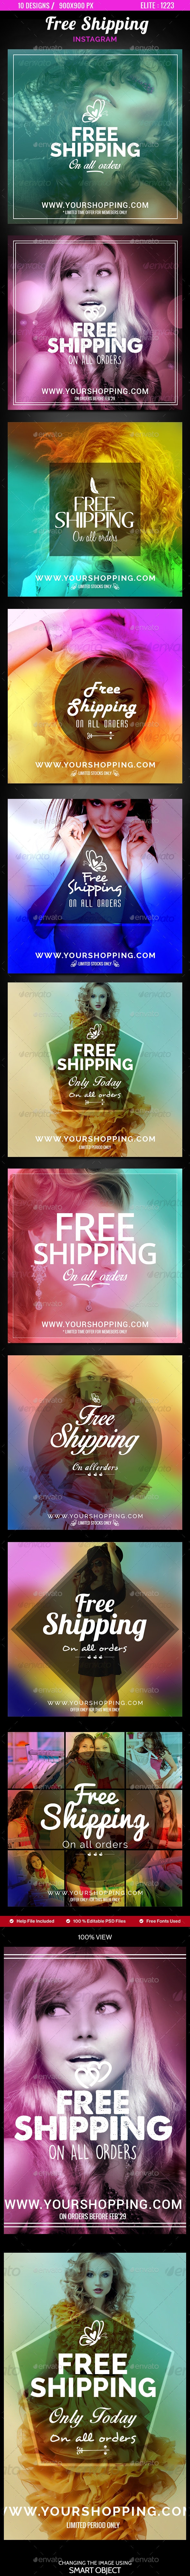 Free Shipping Instagram Templates - 10 Designs - Banners & Ads Web Elements